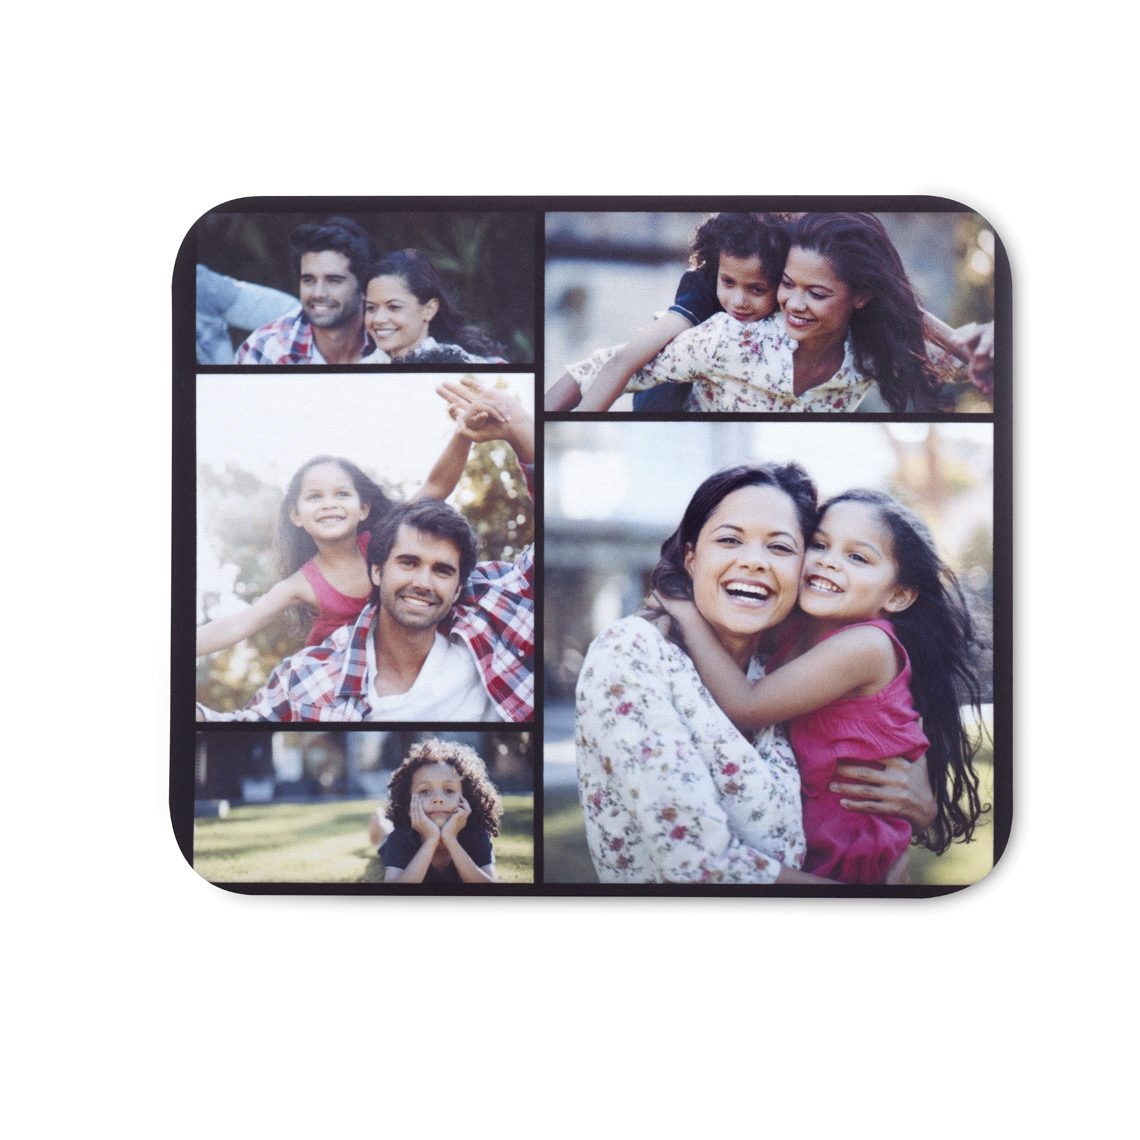 Masterly Photo Mouse Pad Photo Mouse Pad Custom Mouse Pads Cvs Photo Mouse Pad Custom Indonesia Mouse Pad Custom Uk custom Mouse Pad Custom